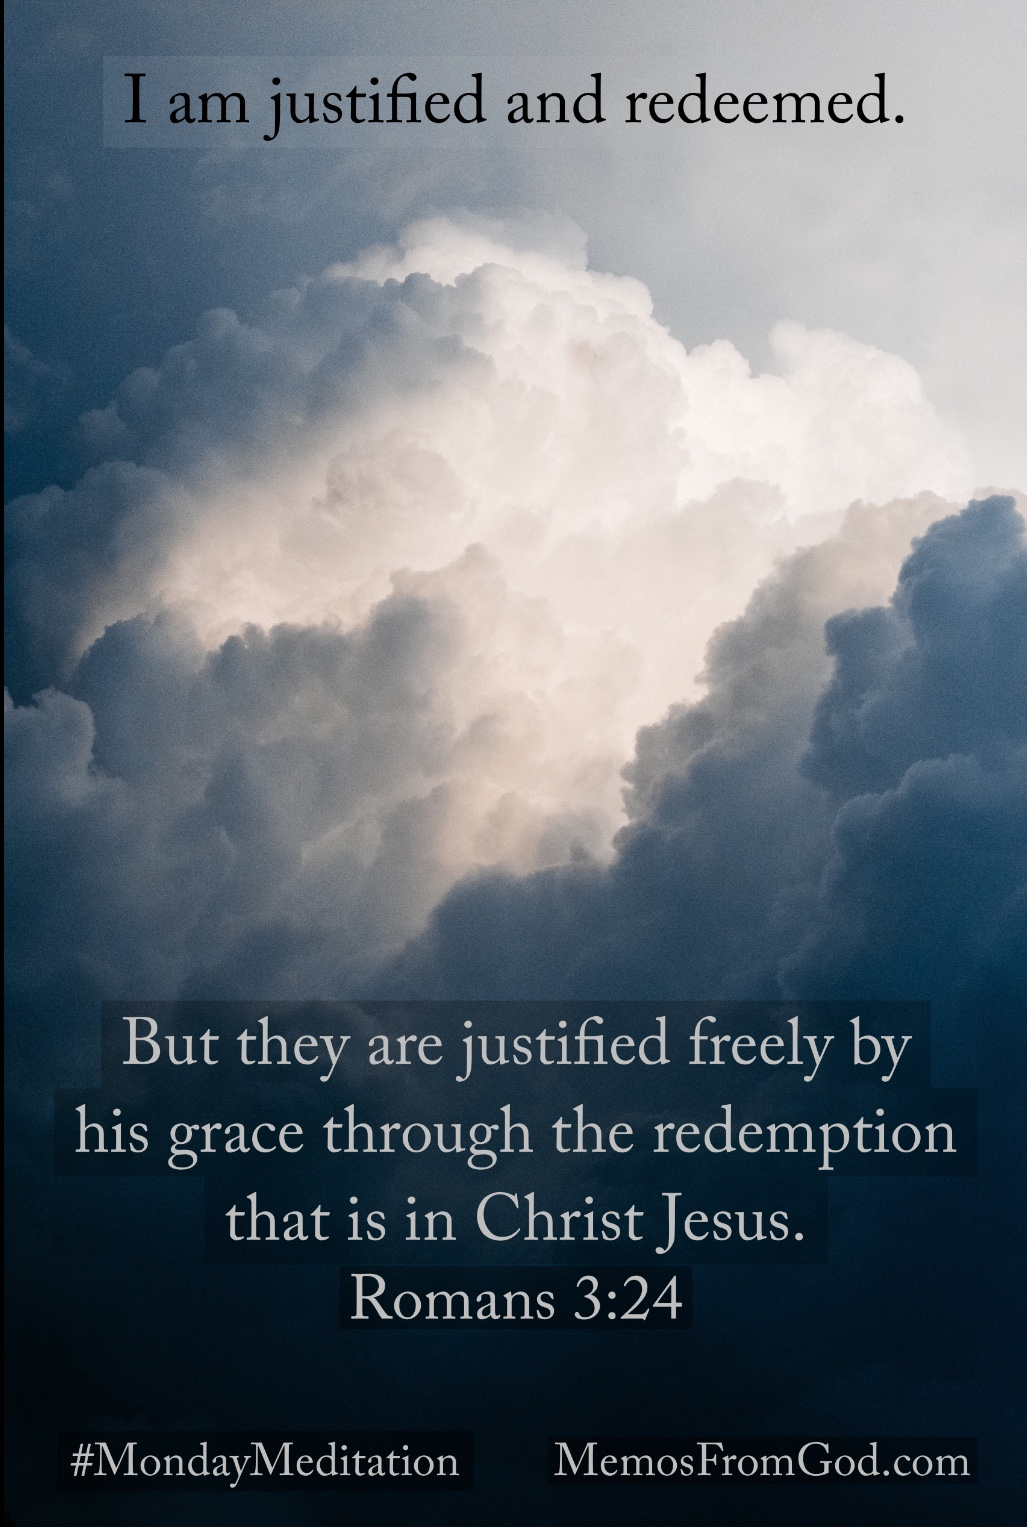 A bright spot in the midst of dark clouds. Caption: But they are justified freely by his grace through the redemption that is in Christ Jesus. Romans 3:24